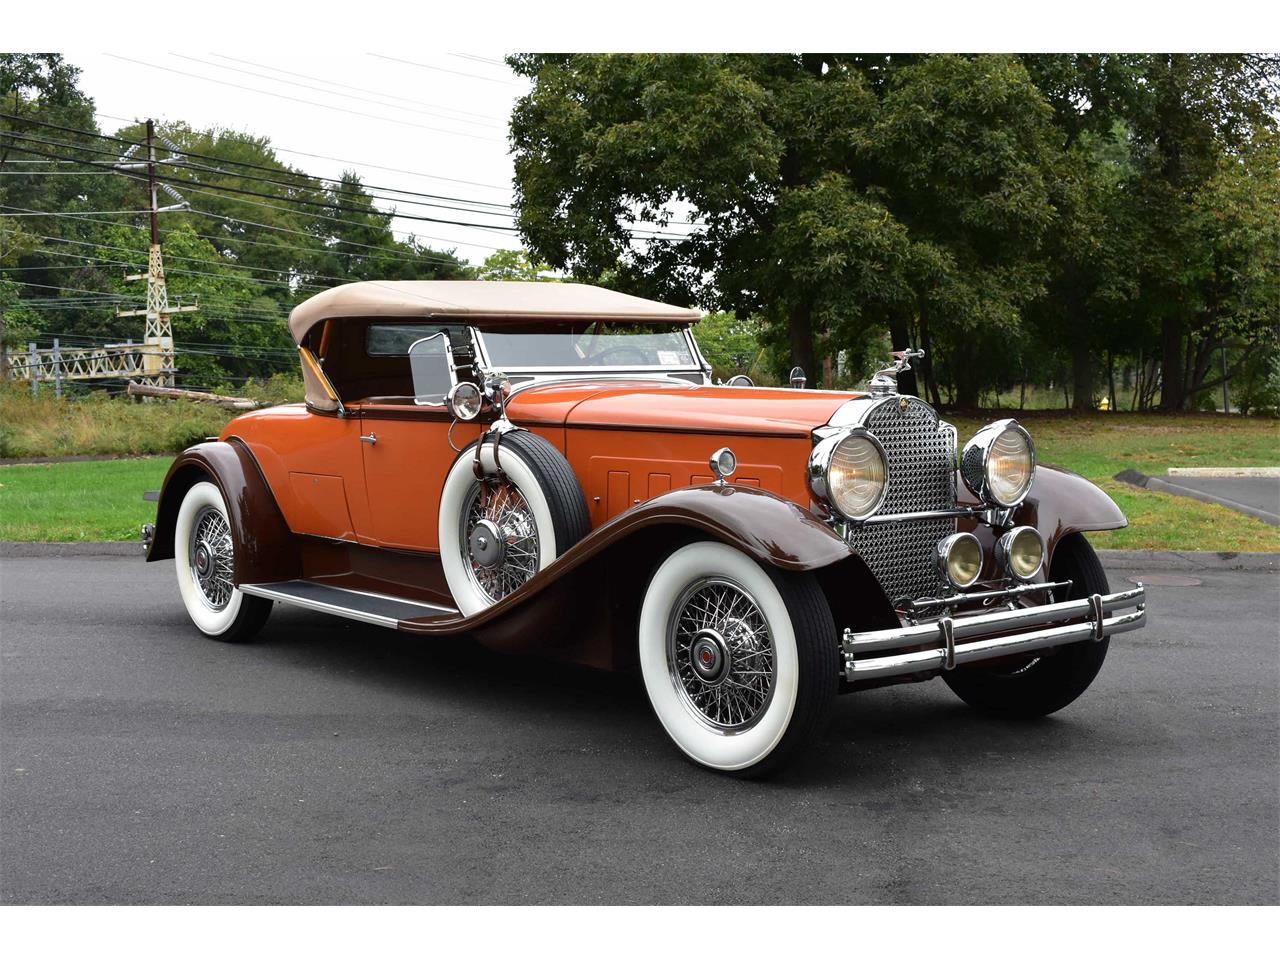 1930 Packard 740 Roadster (CC-1166684) for sale in Orange, Connecticut